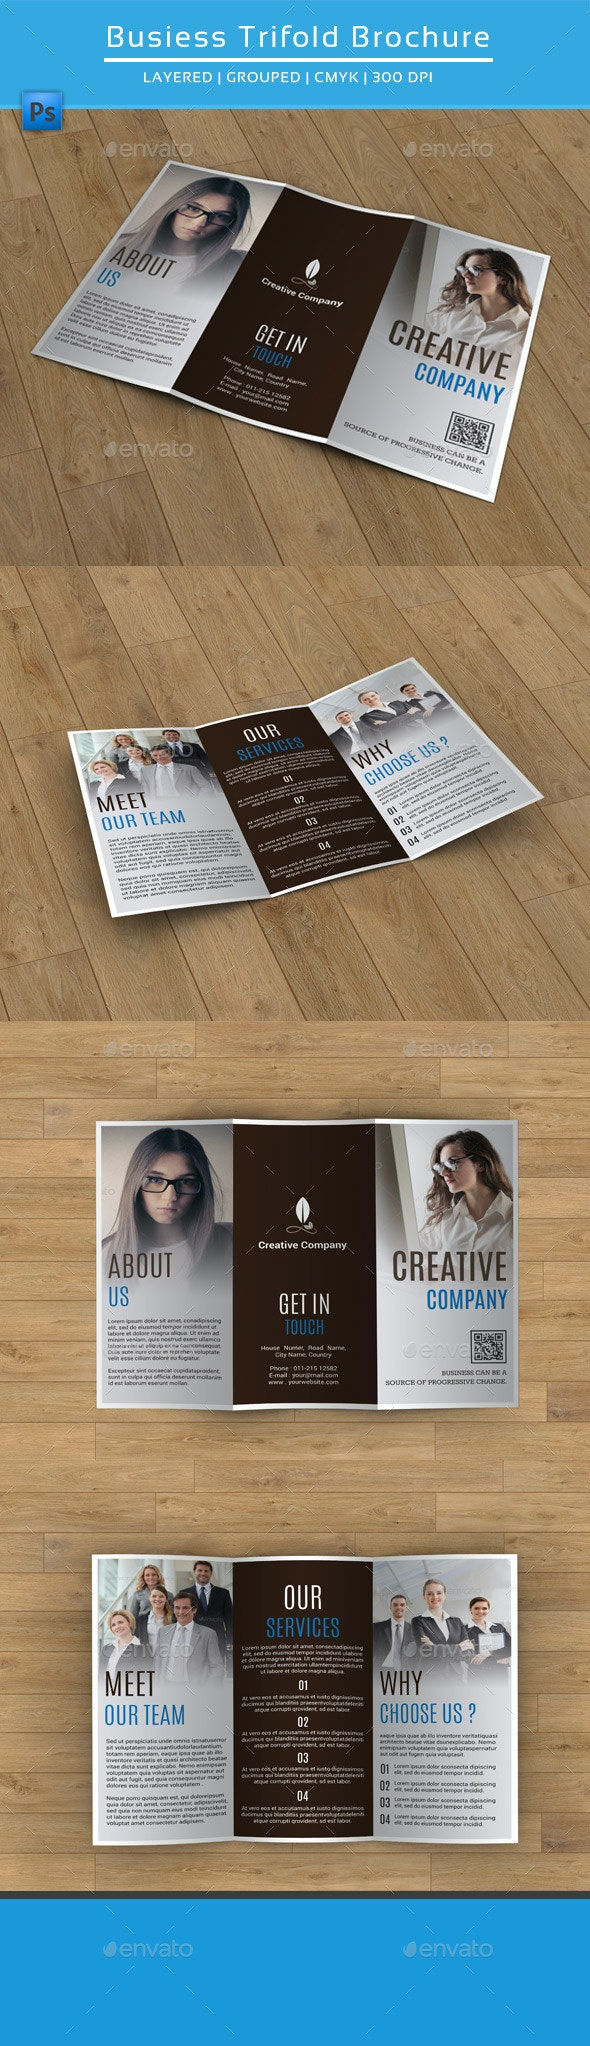 Clean Business Trifold Brochure-V181 - Corporate Brochures